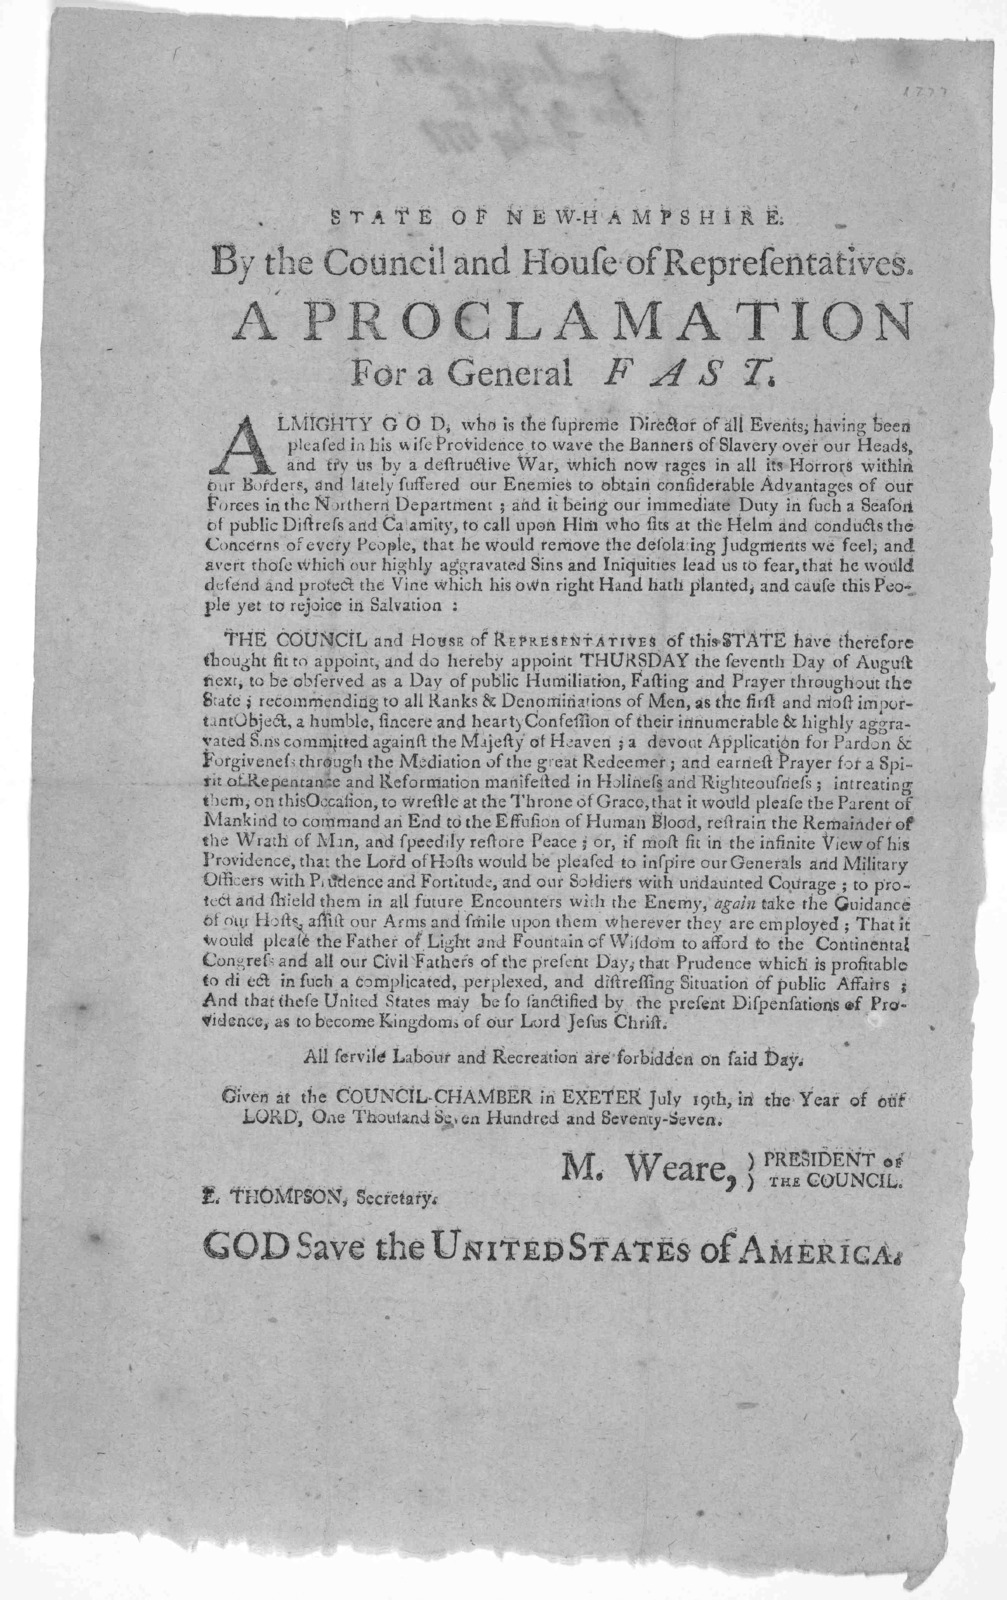 State of New Hampshire. By the Council and House of representatives. A proclamation for a general fast ... and do hereby appoint Thursday the seventh day of August next, to be observed as a day of public humiliation, fasting and prayer throughou